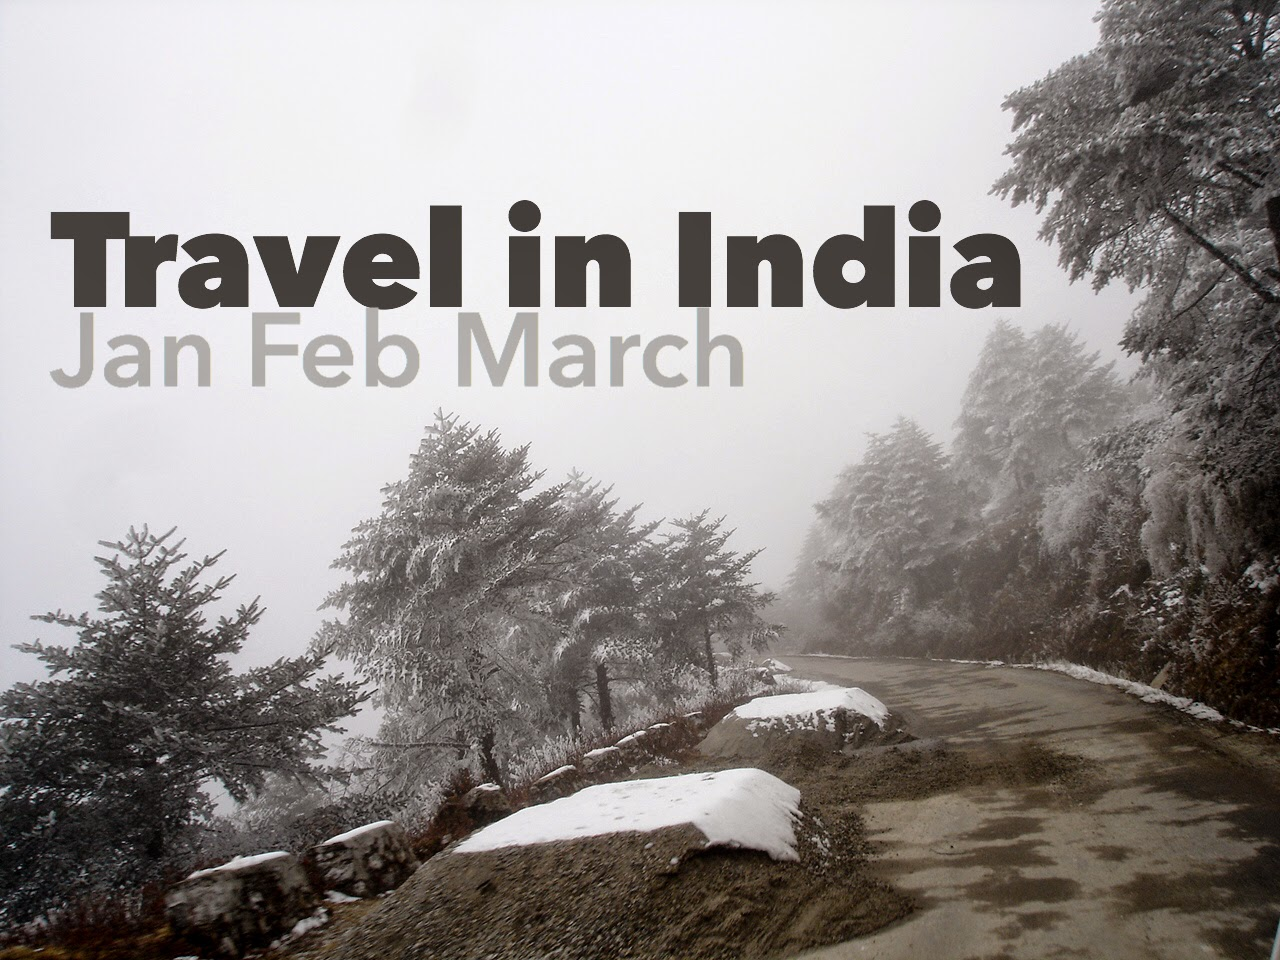 Incredible india travel ideas for jan feb and march for Vacation spots for march